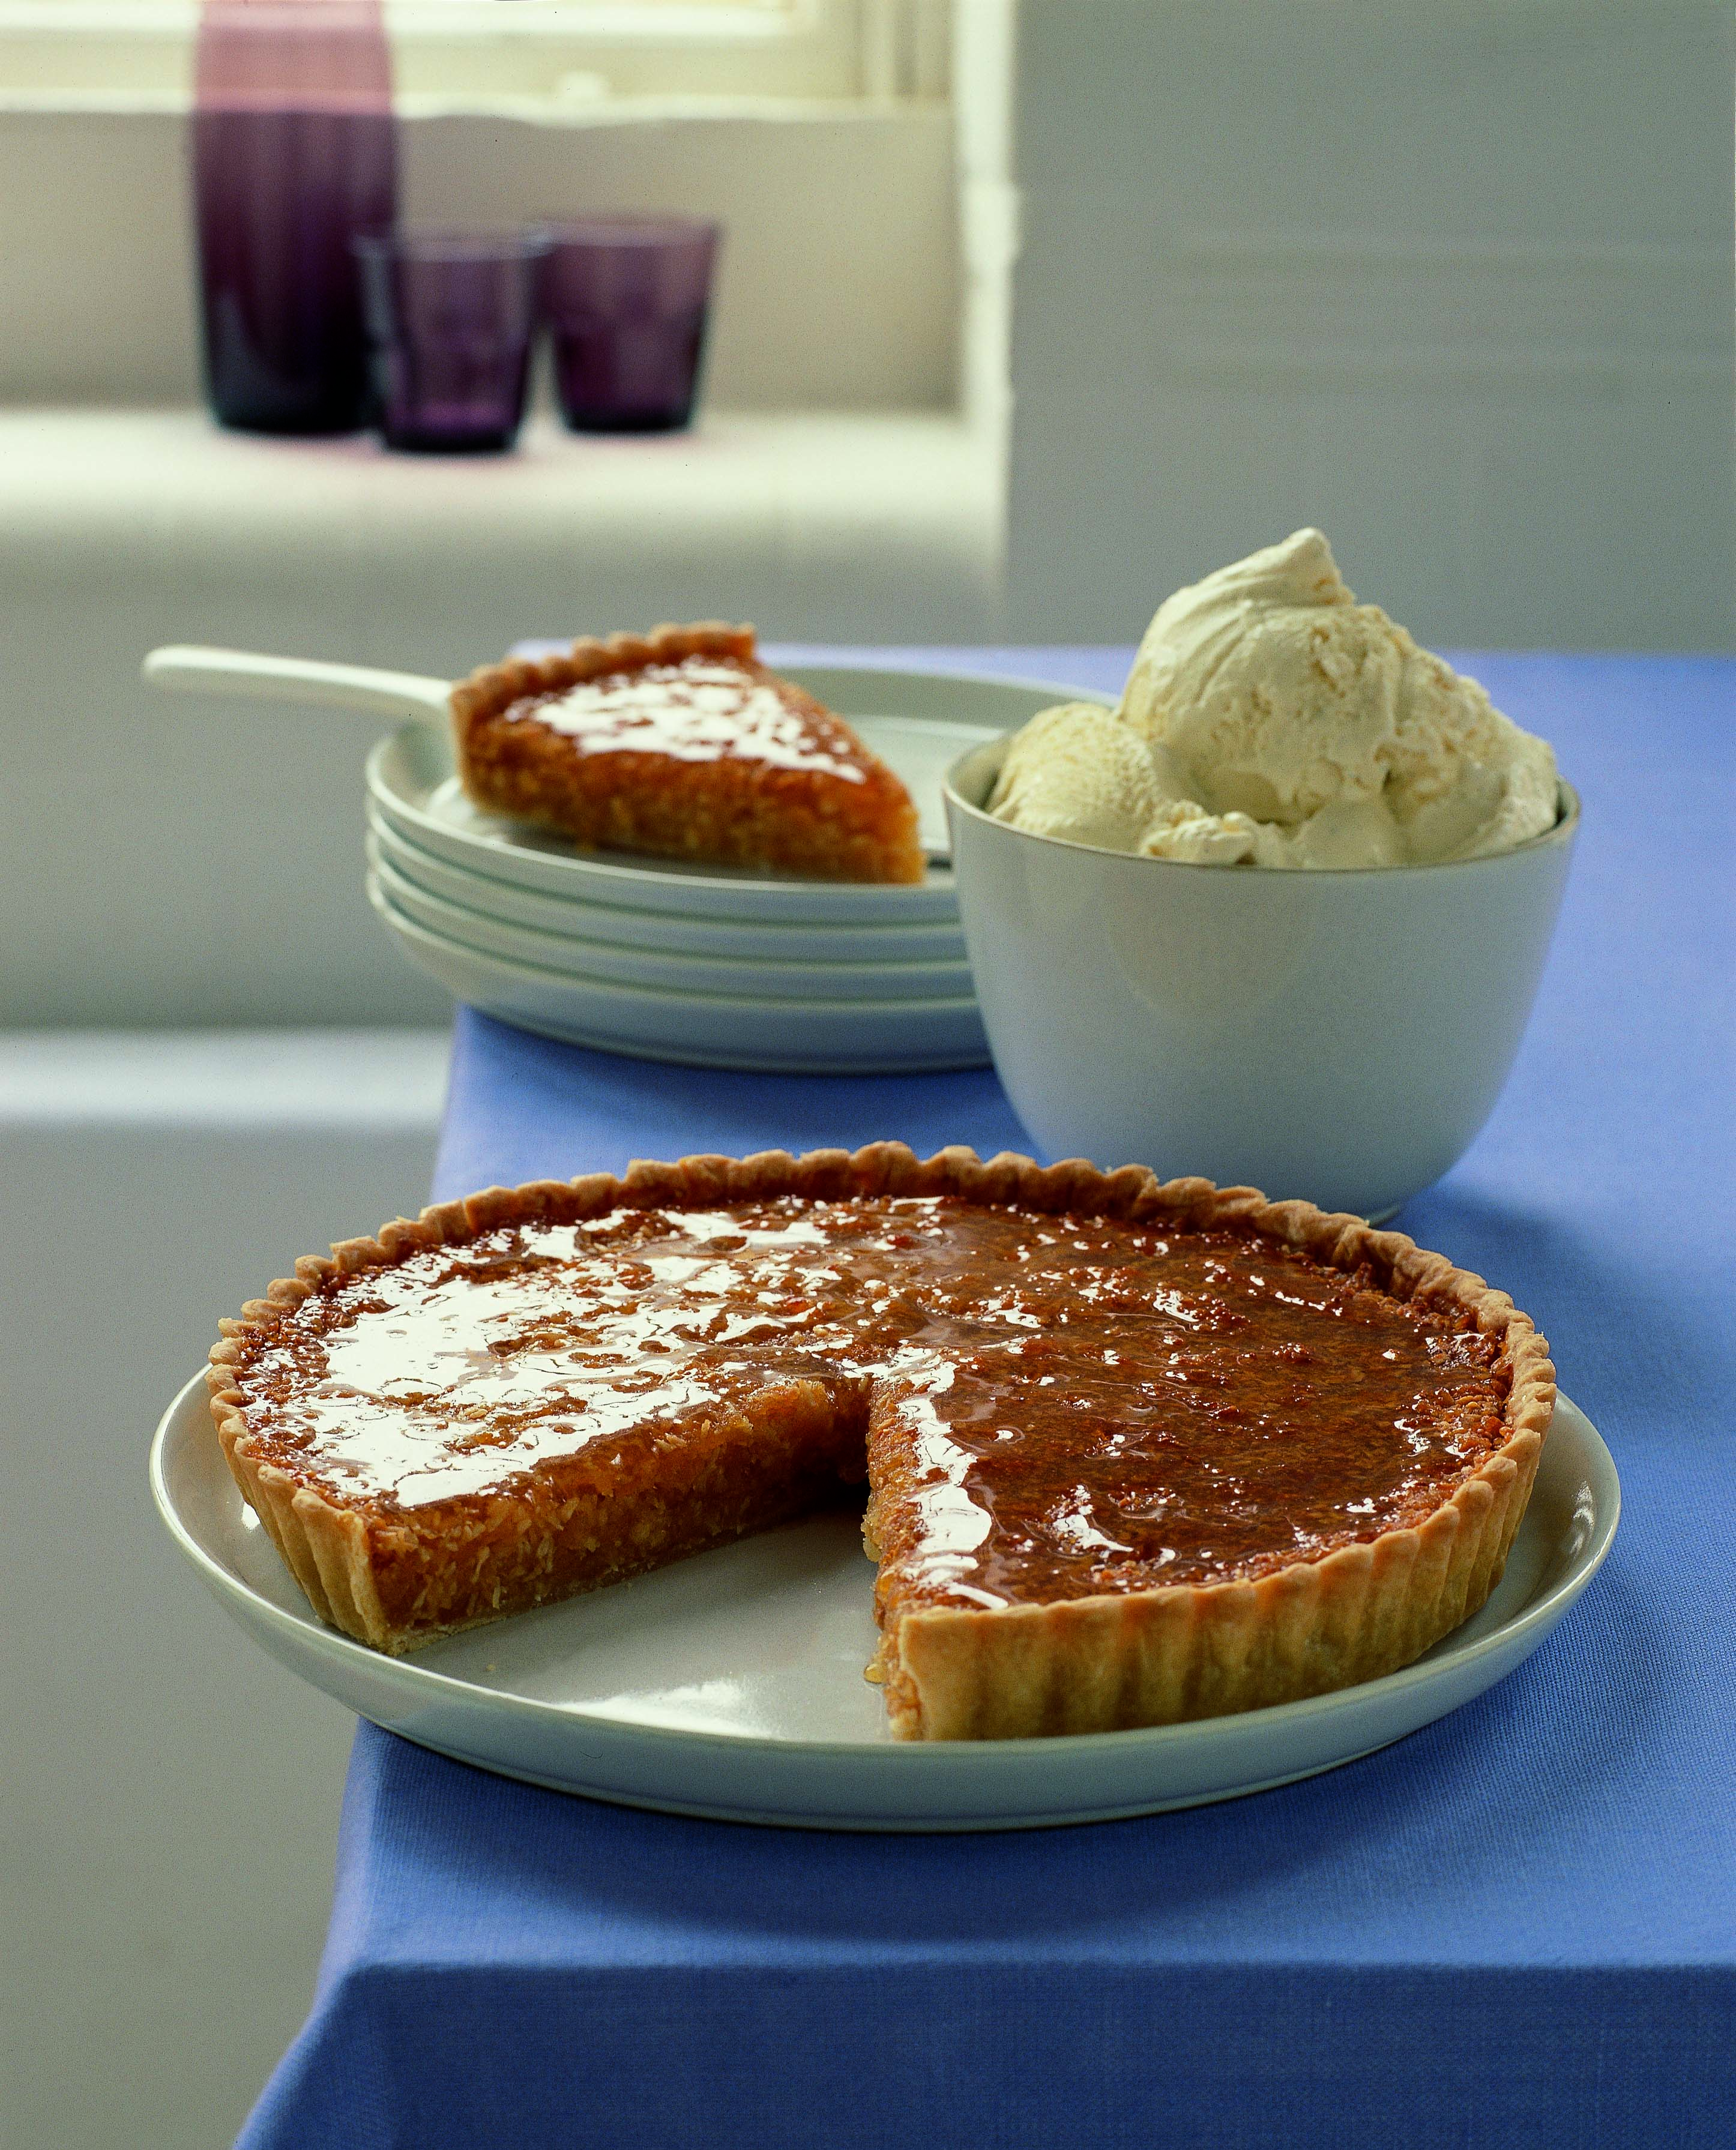 Coconut Treacle Tart With Quick Clotted Cream Ice Cream Ainsley Harriott